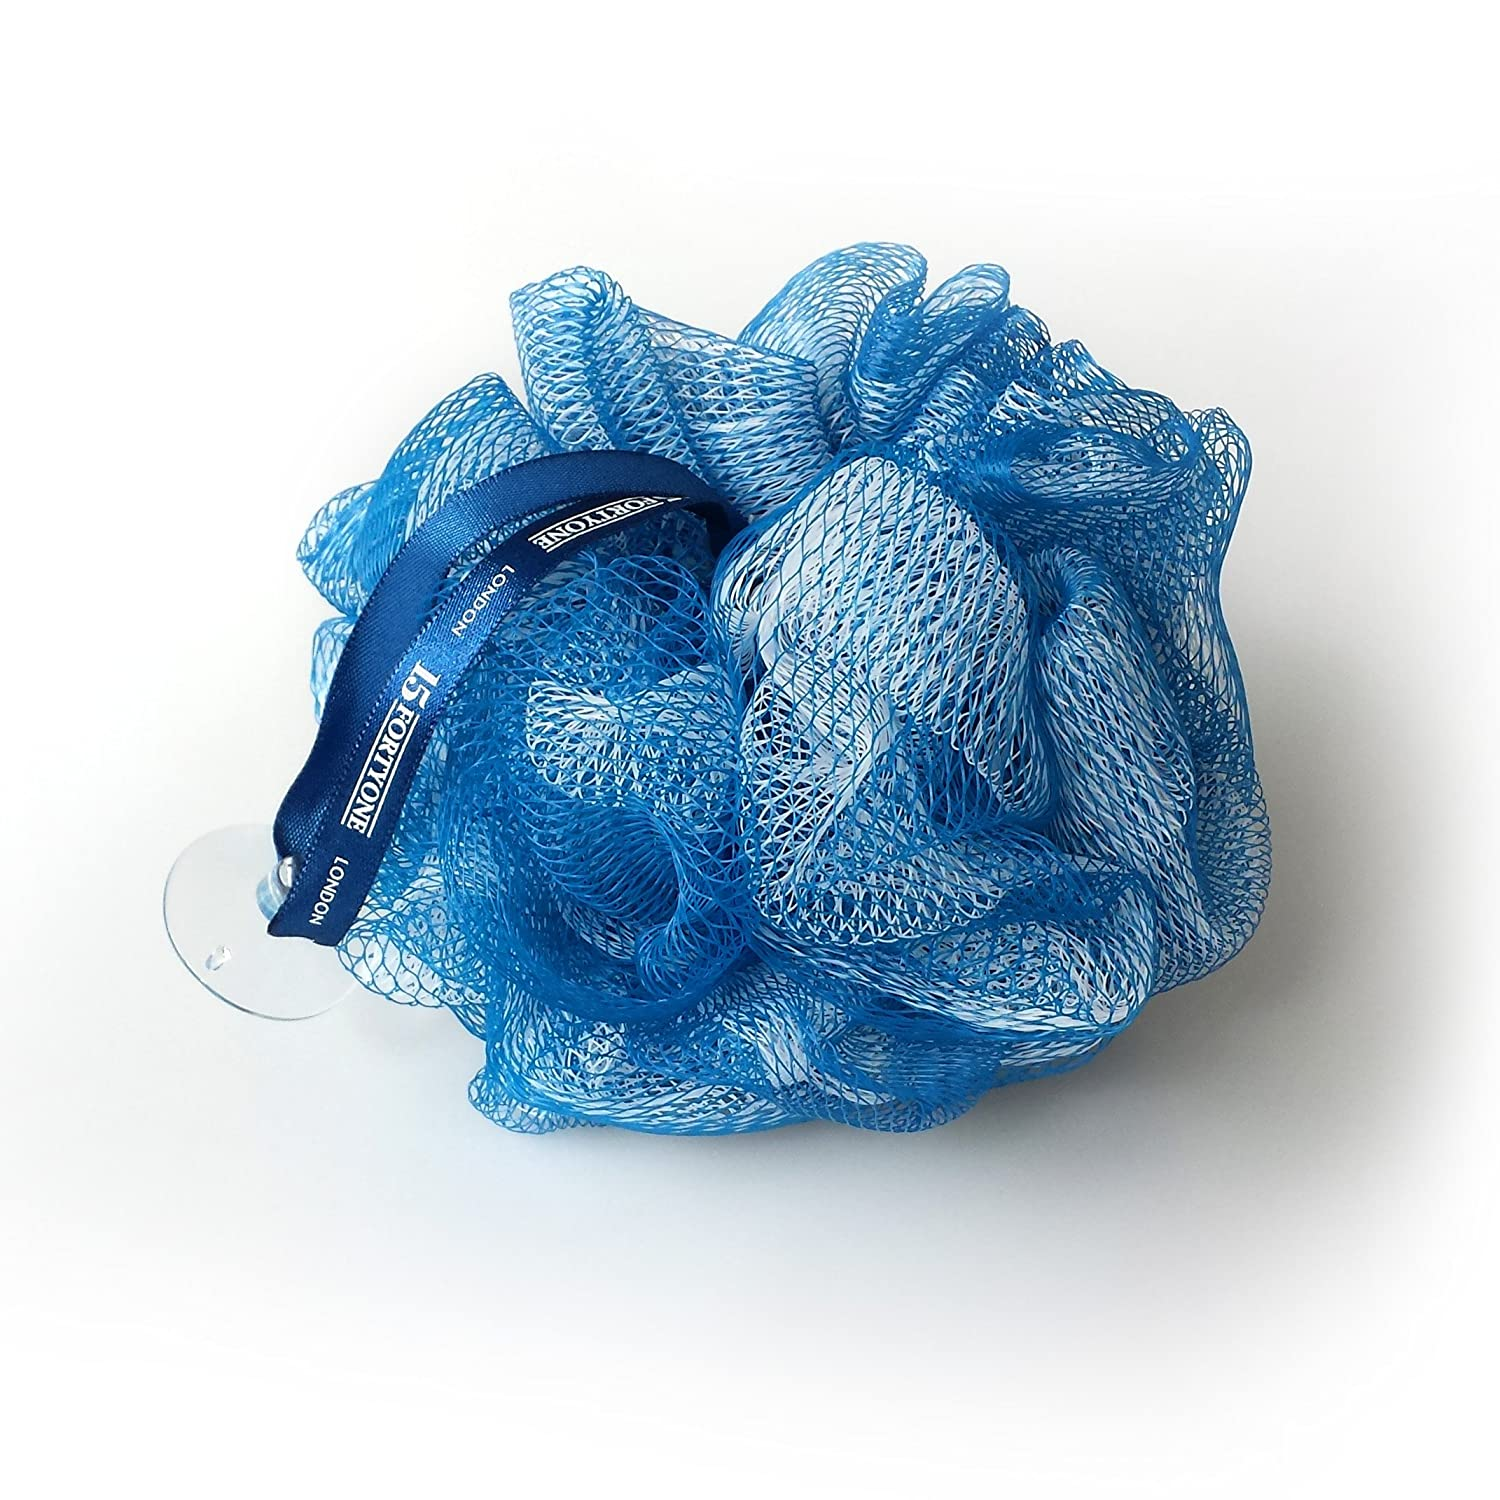 1541 London Exfoliating Bath & Shower Body Puff / Scrunchie / Buffer (Midnight Blue)